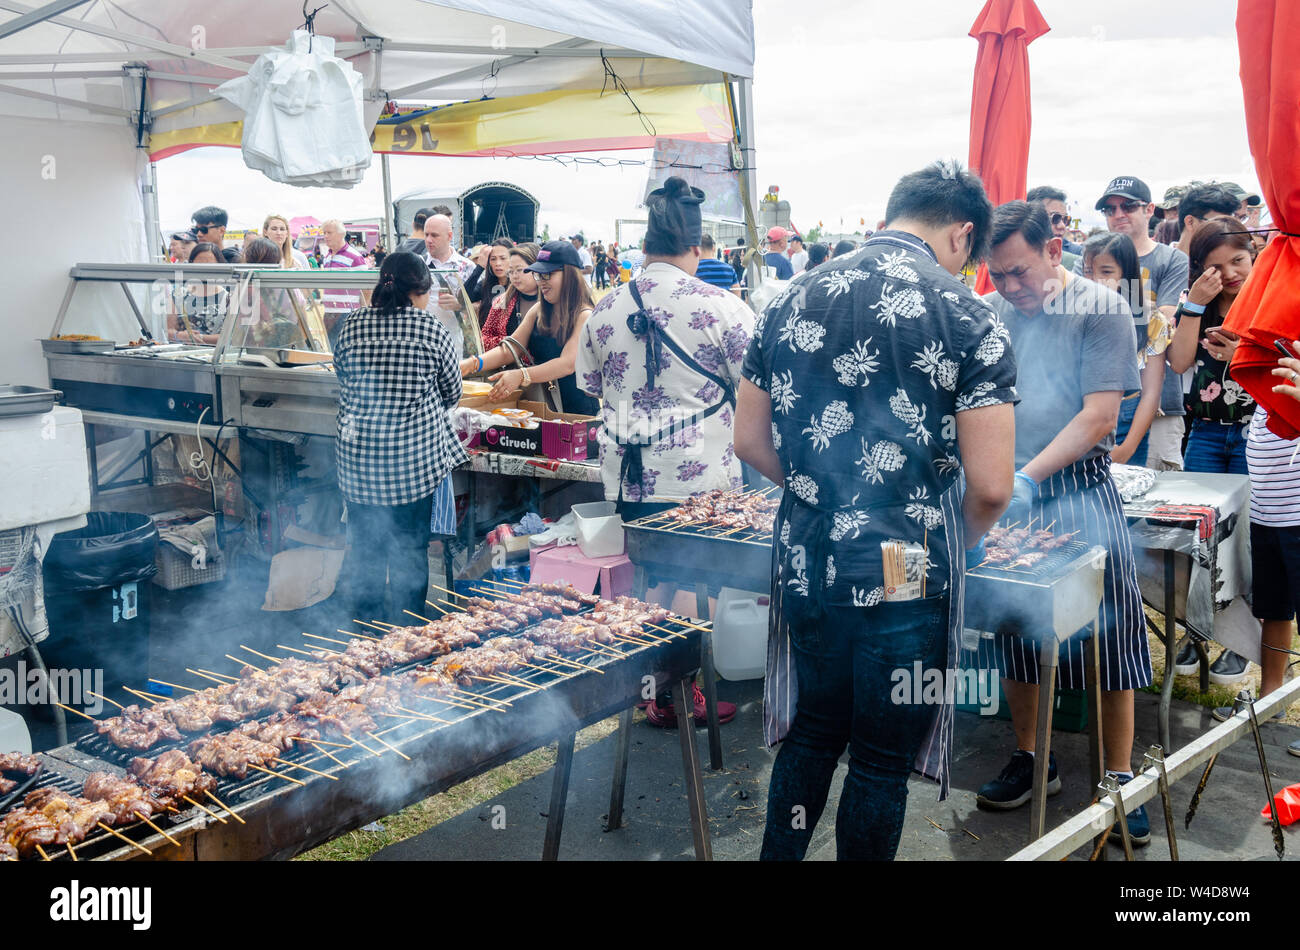 a-street-food-catering-stall-at-a-filipino-event-in-london-pork-barbeque-cooks-on-grills-attended-by-two-men-W4D8W4.jpg